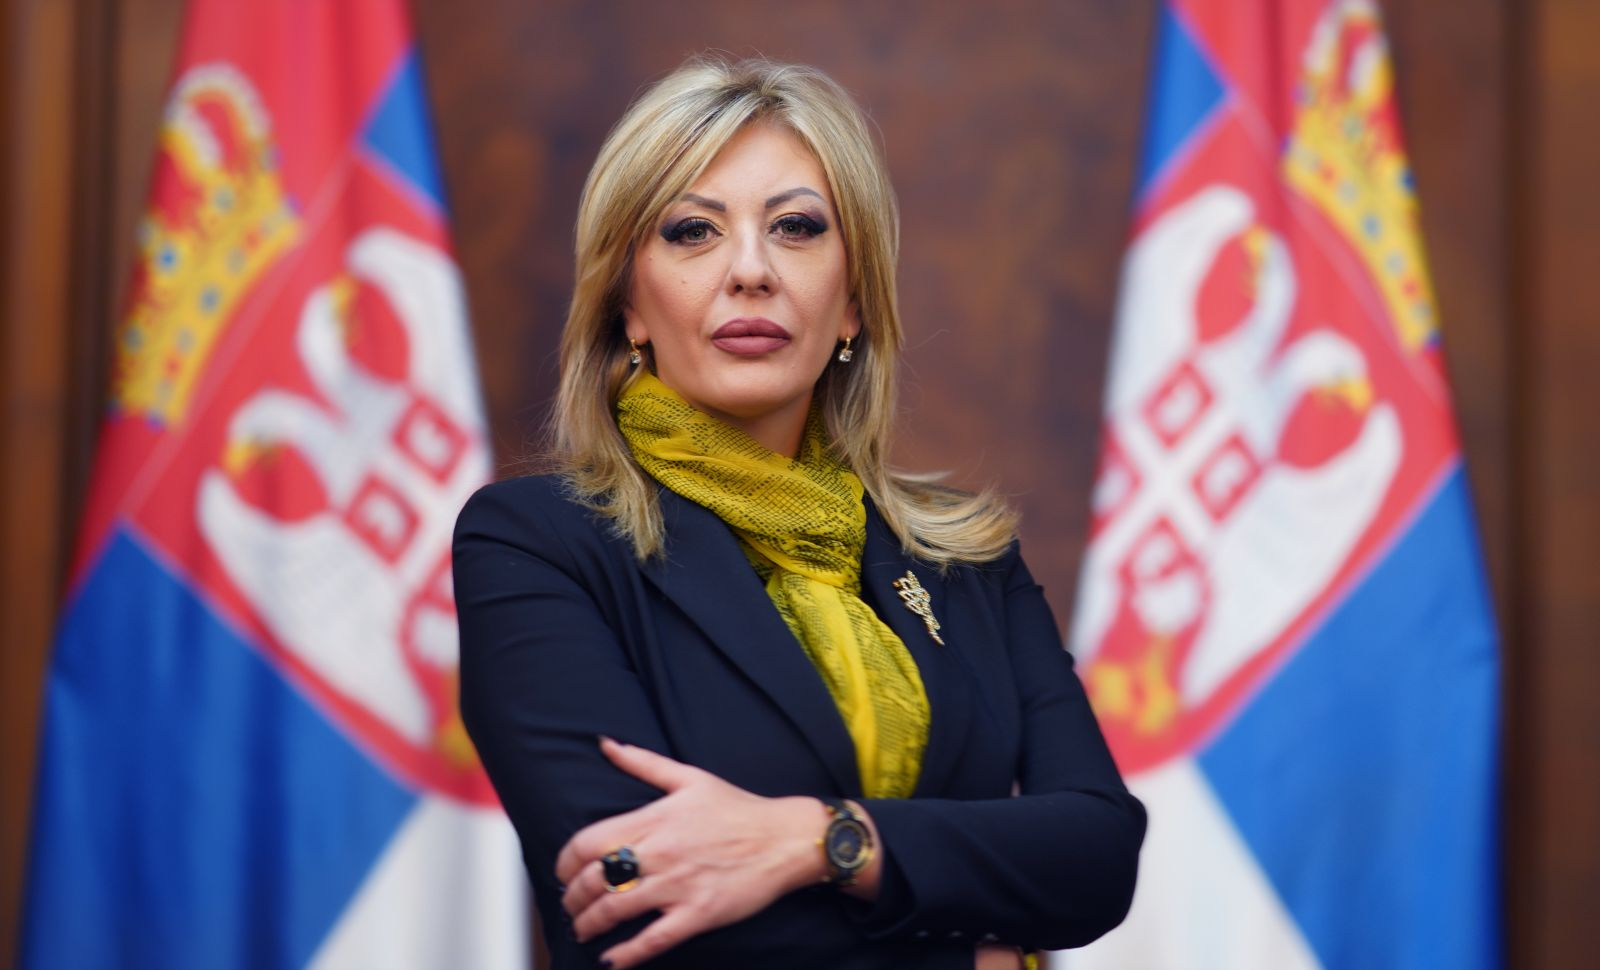 J. Joksimović: Croatian EU Presidency to continue with the Credible Enlargement Strategy